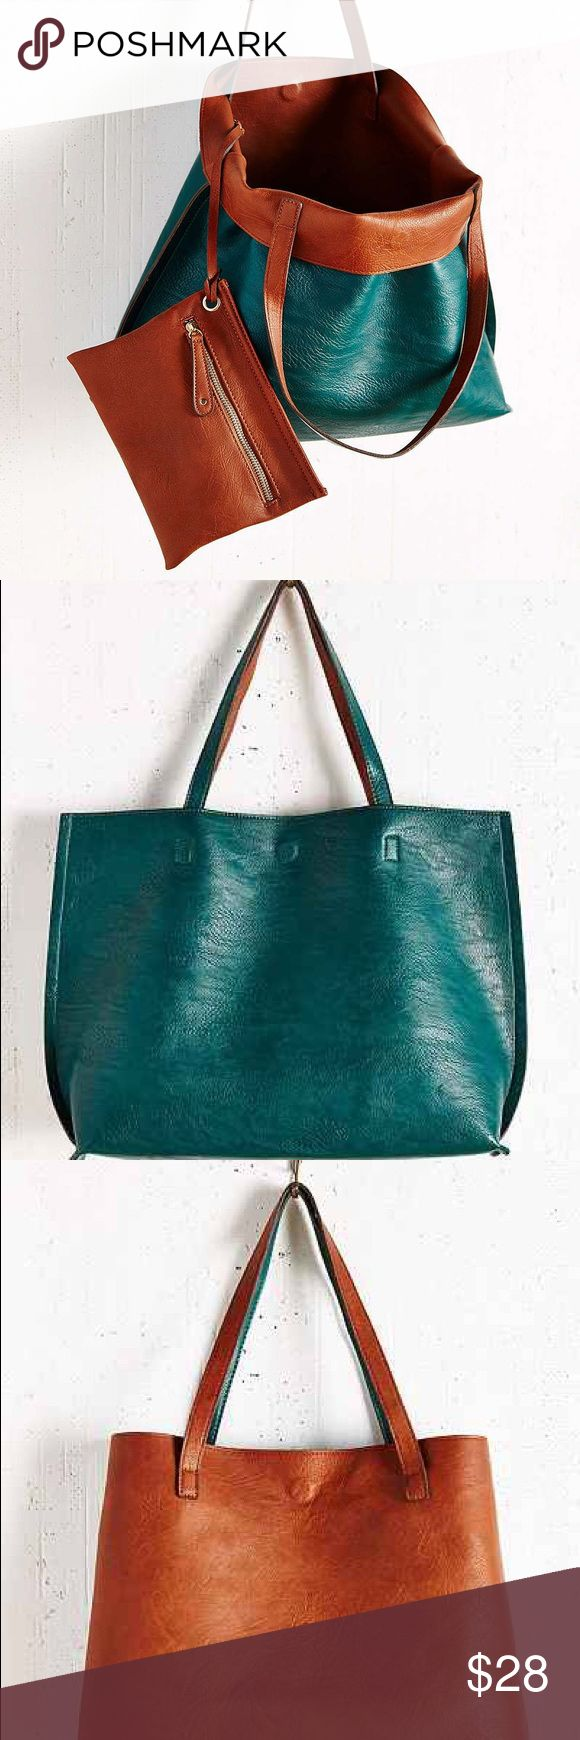 Reversible Urban Outfitters Tote Bag Reversible Urban Outfitters Vegan Leather Tote Bag in Pebbled Faux Leather. Colors Brown & Teal.   • Mix n match • Features hidden magnetic closure • Spot Clean Urban Outfitters Bags Totes